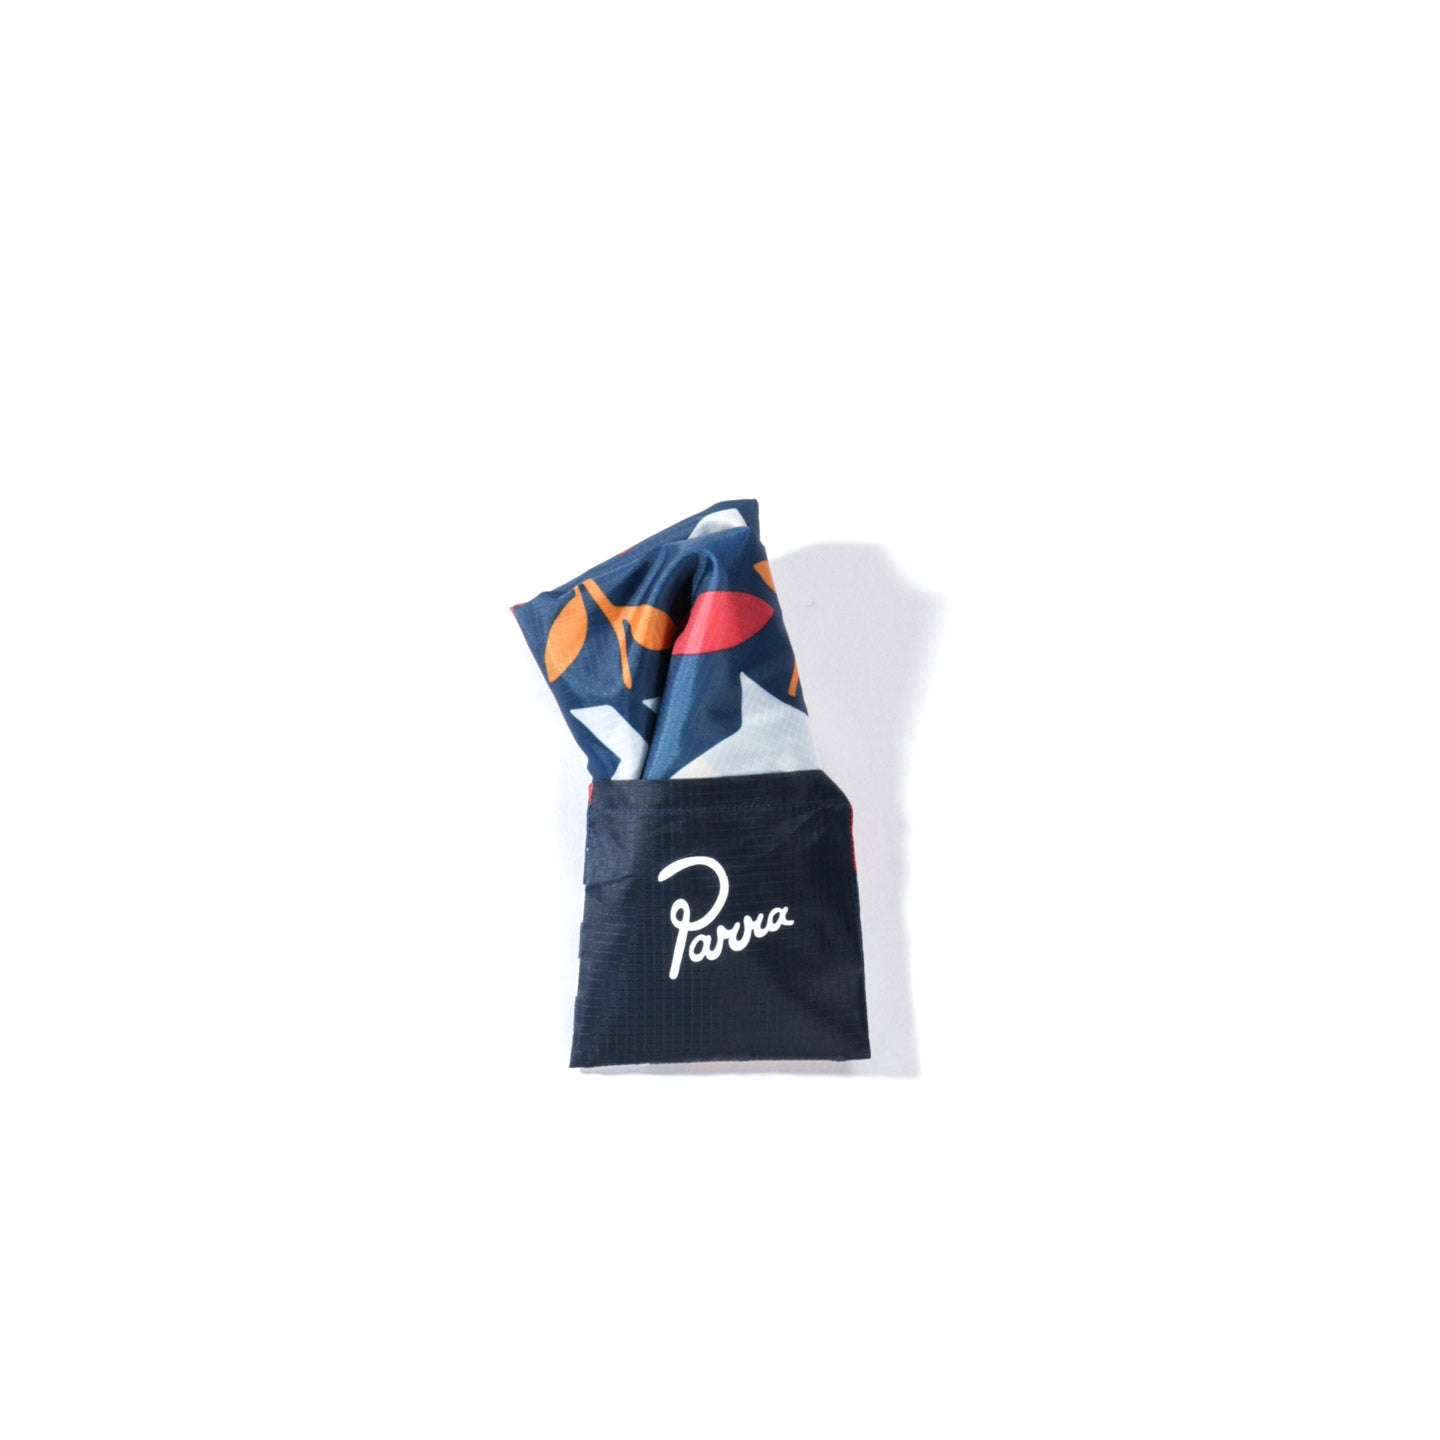 BY PARRA SHOPPING BAG STILL LIFE WITH PLANTS